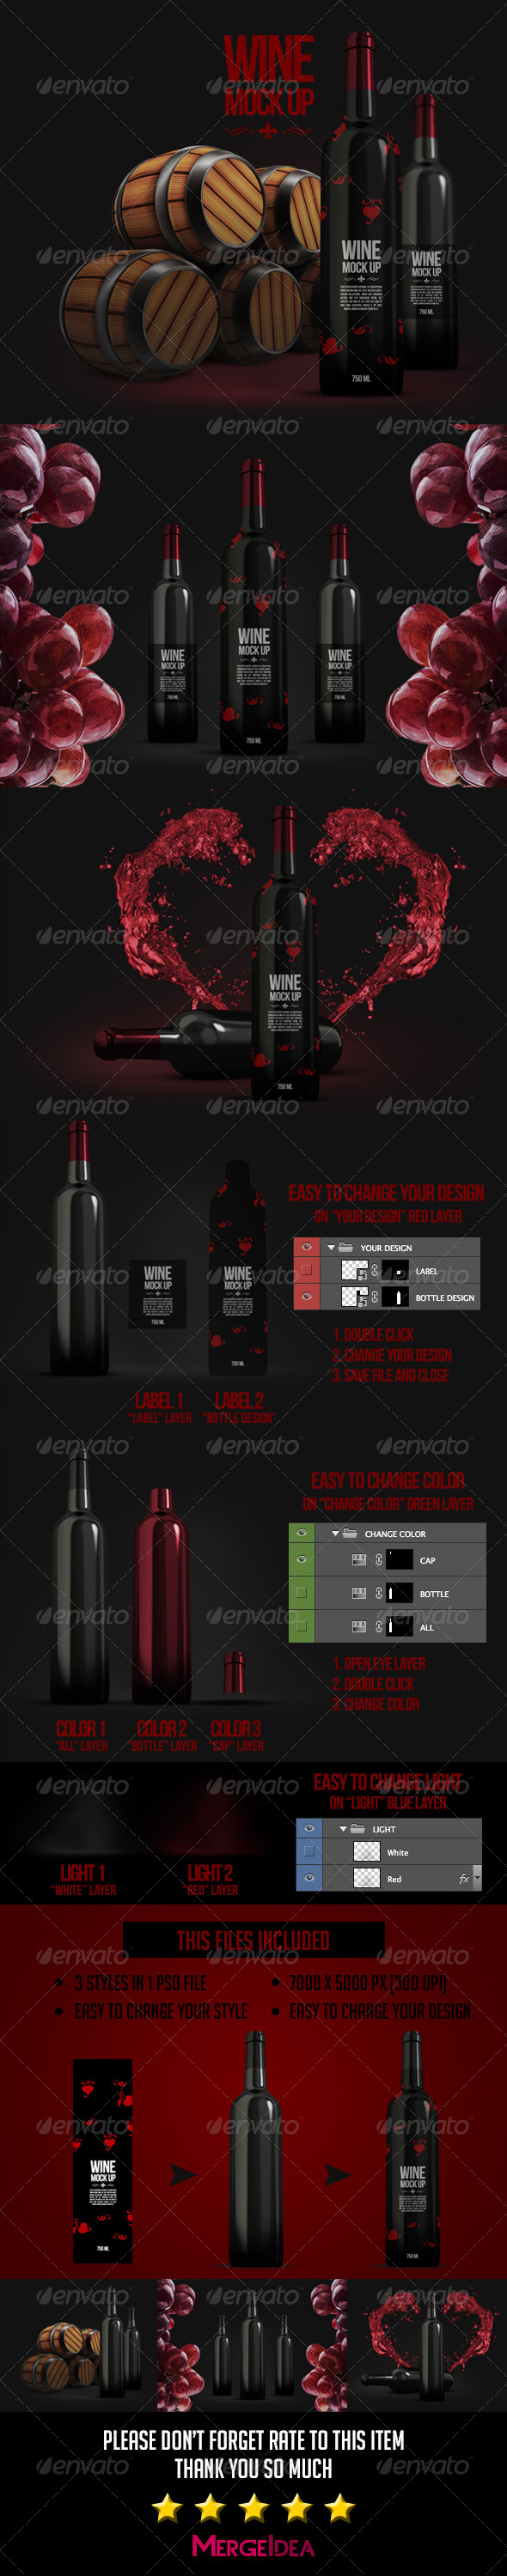 GraphicRiver Wine Mockup 7891171